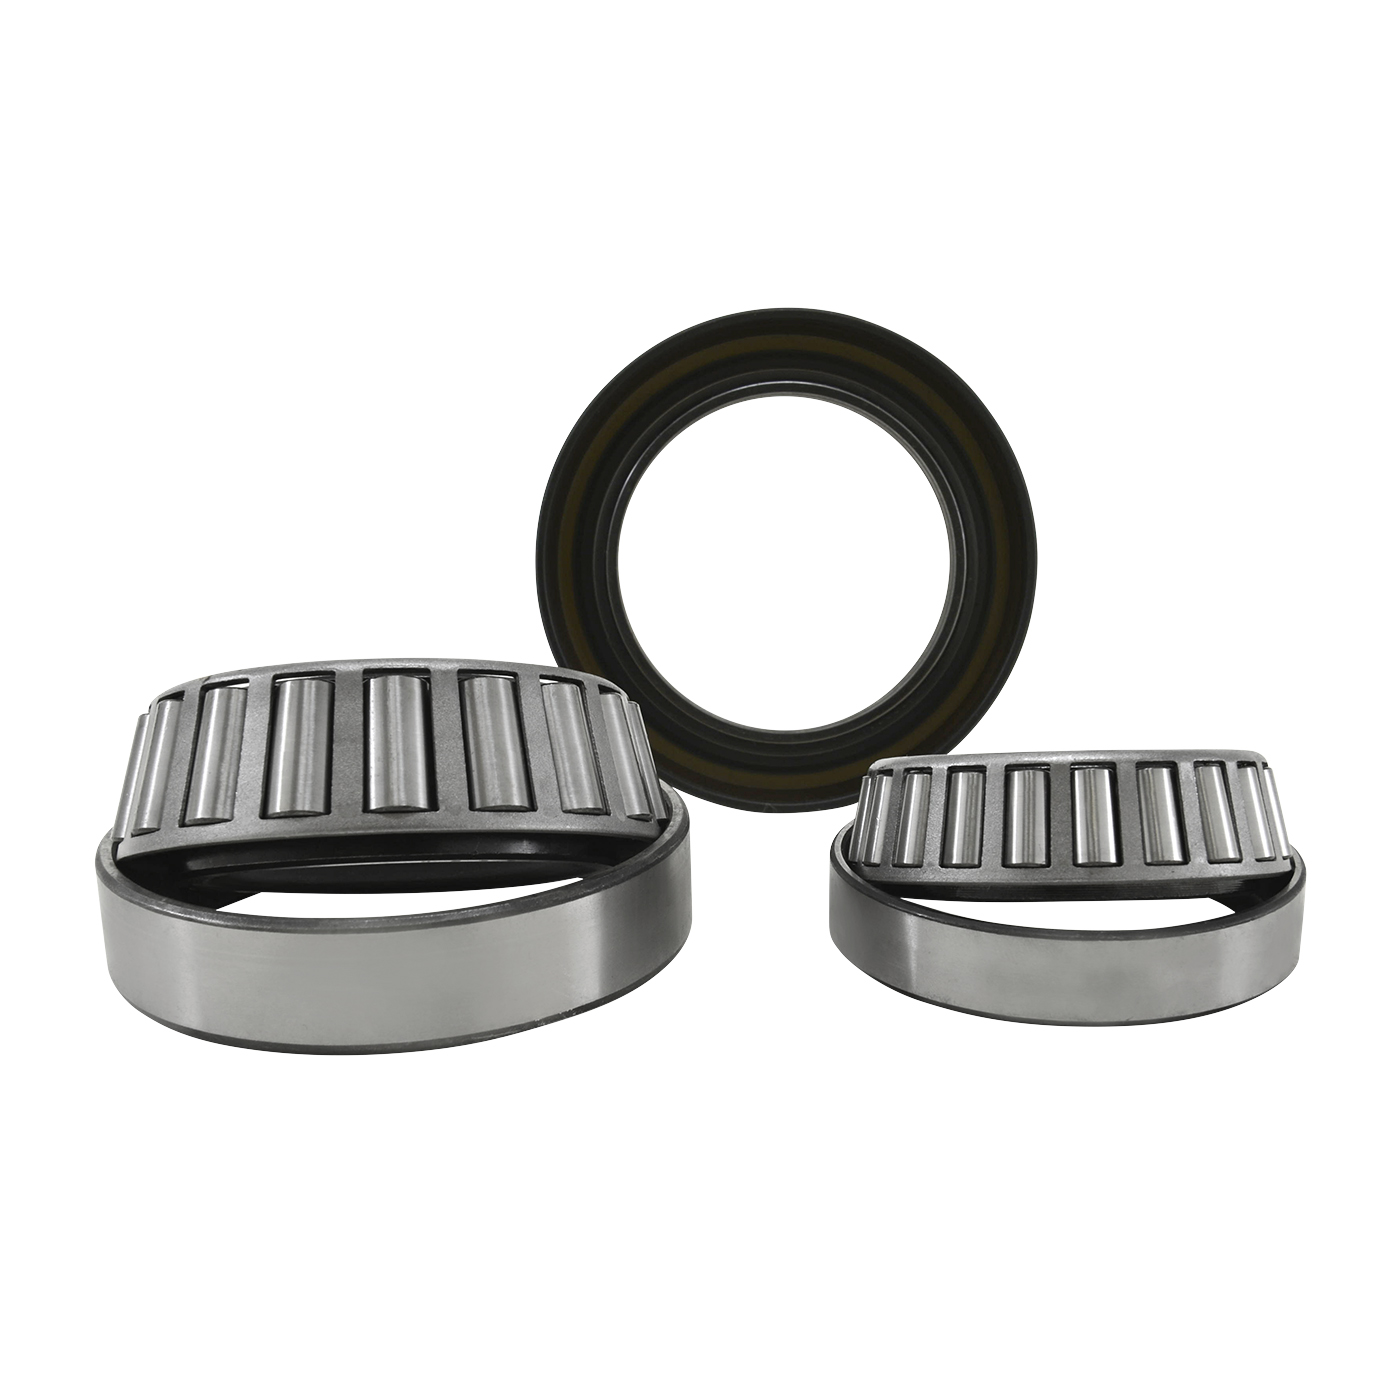 AK C11.5-DRW - Yukon Rear Axle Bearing and Seal Kit for Chrysler